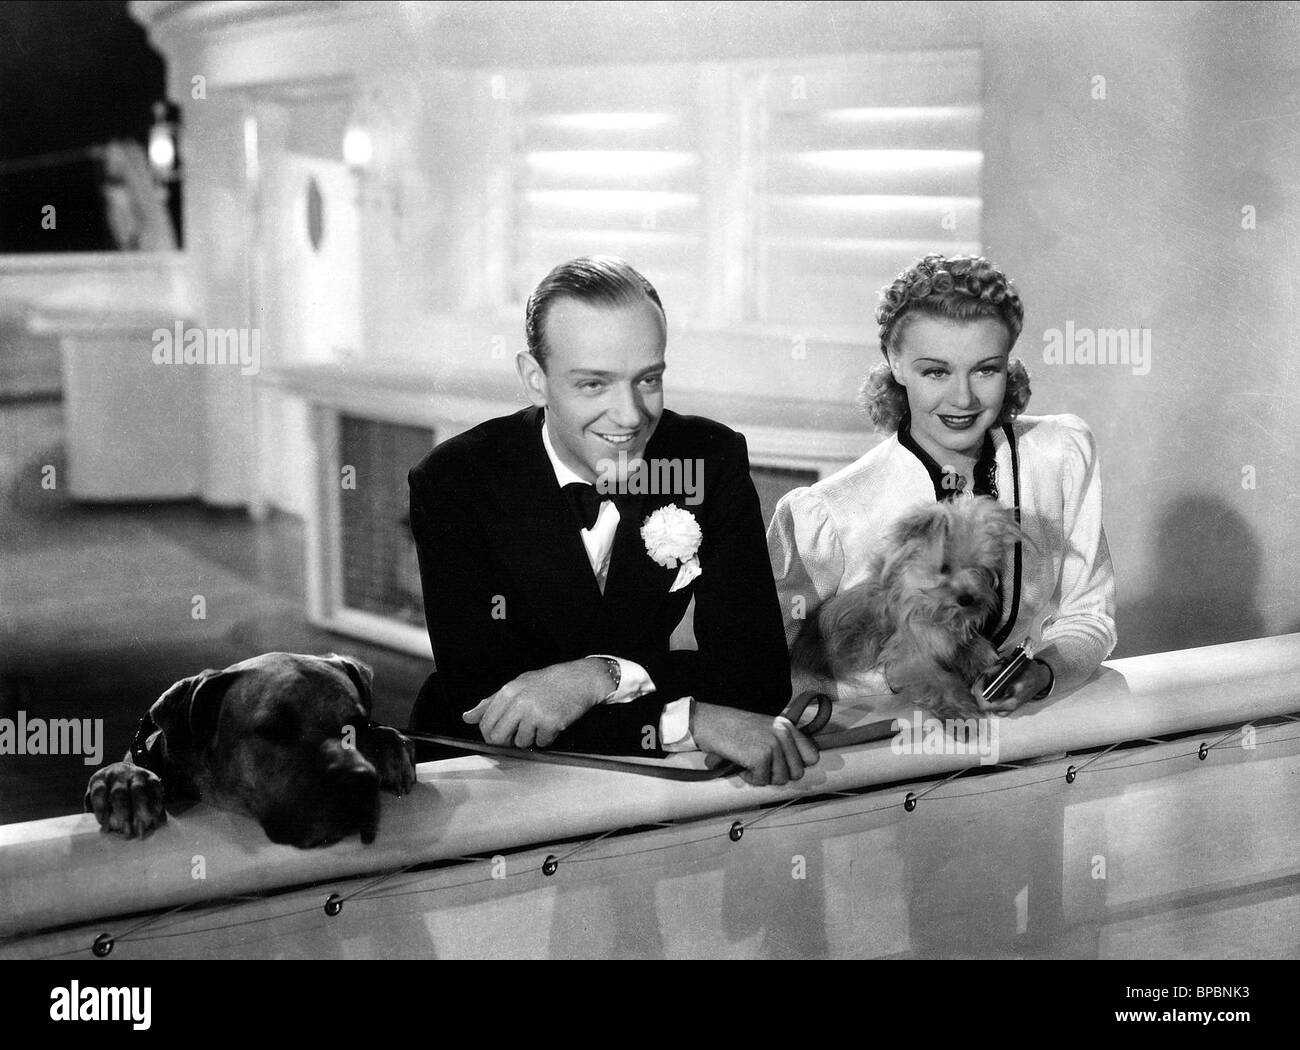 Fred Astaire Ginger Rogers Shall We Dance 1937 Stock Photo Alamy